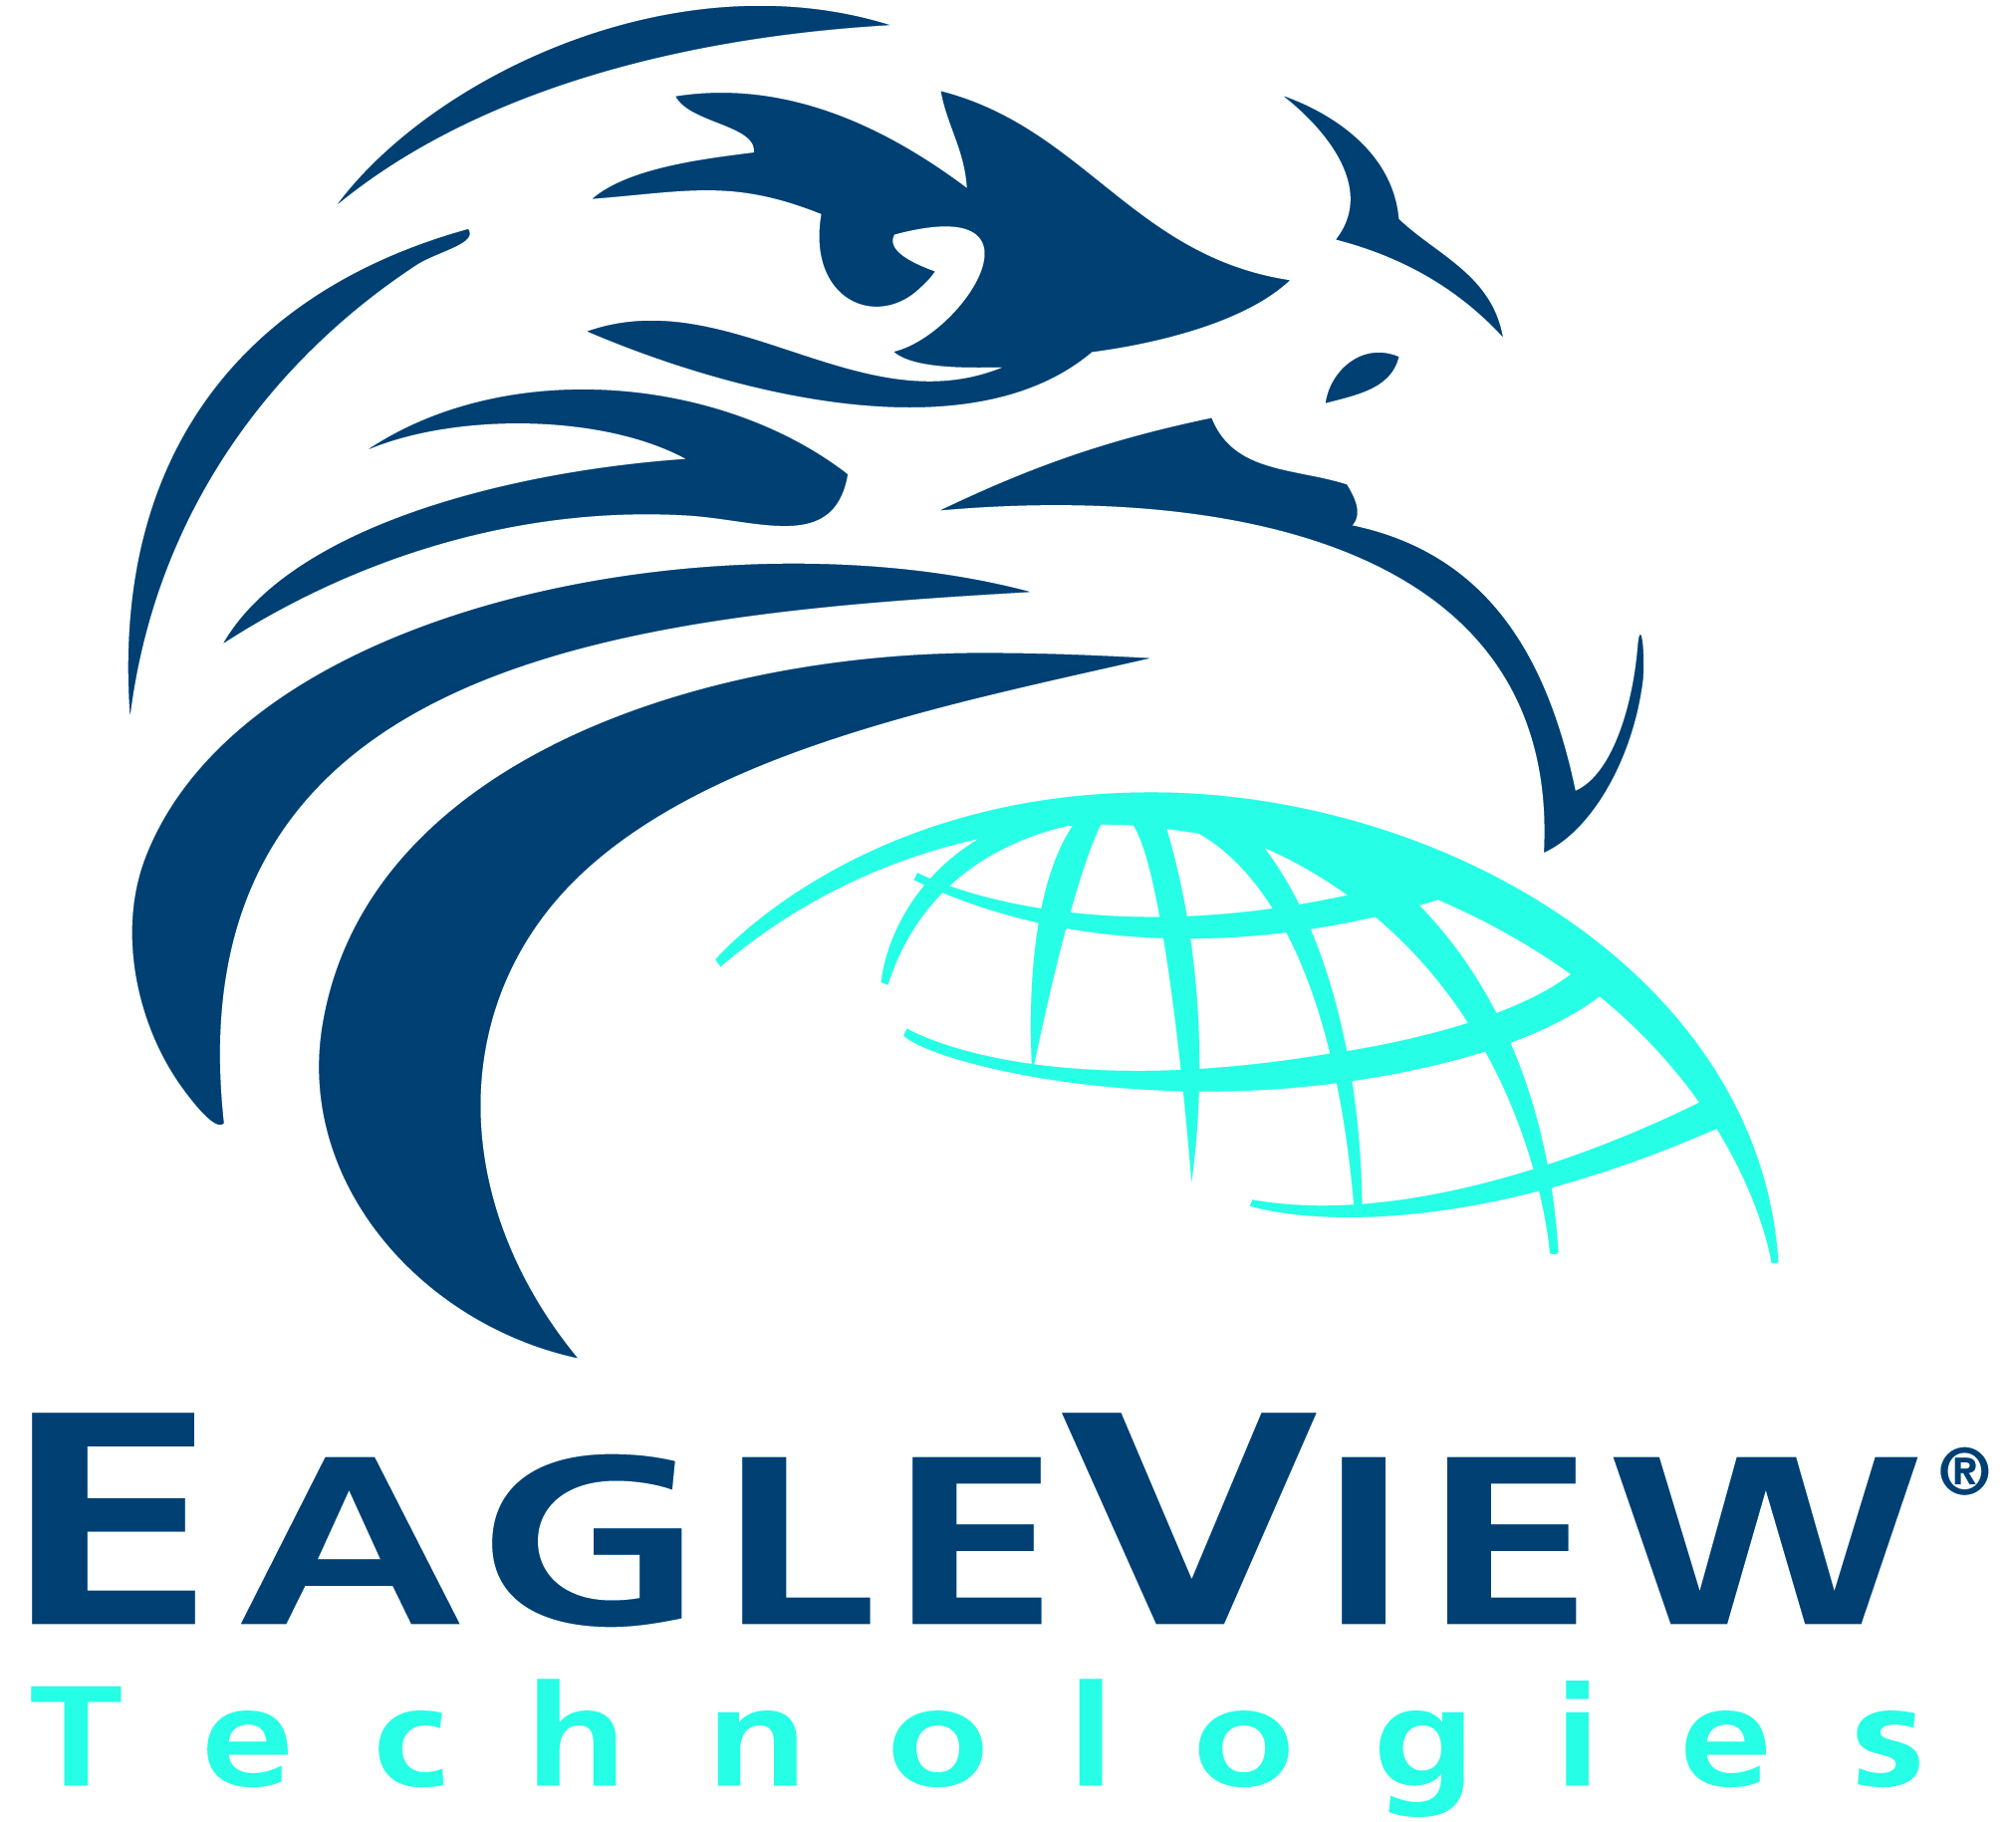 Eagleview 174 Technologies Launches Enhanced Website